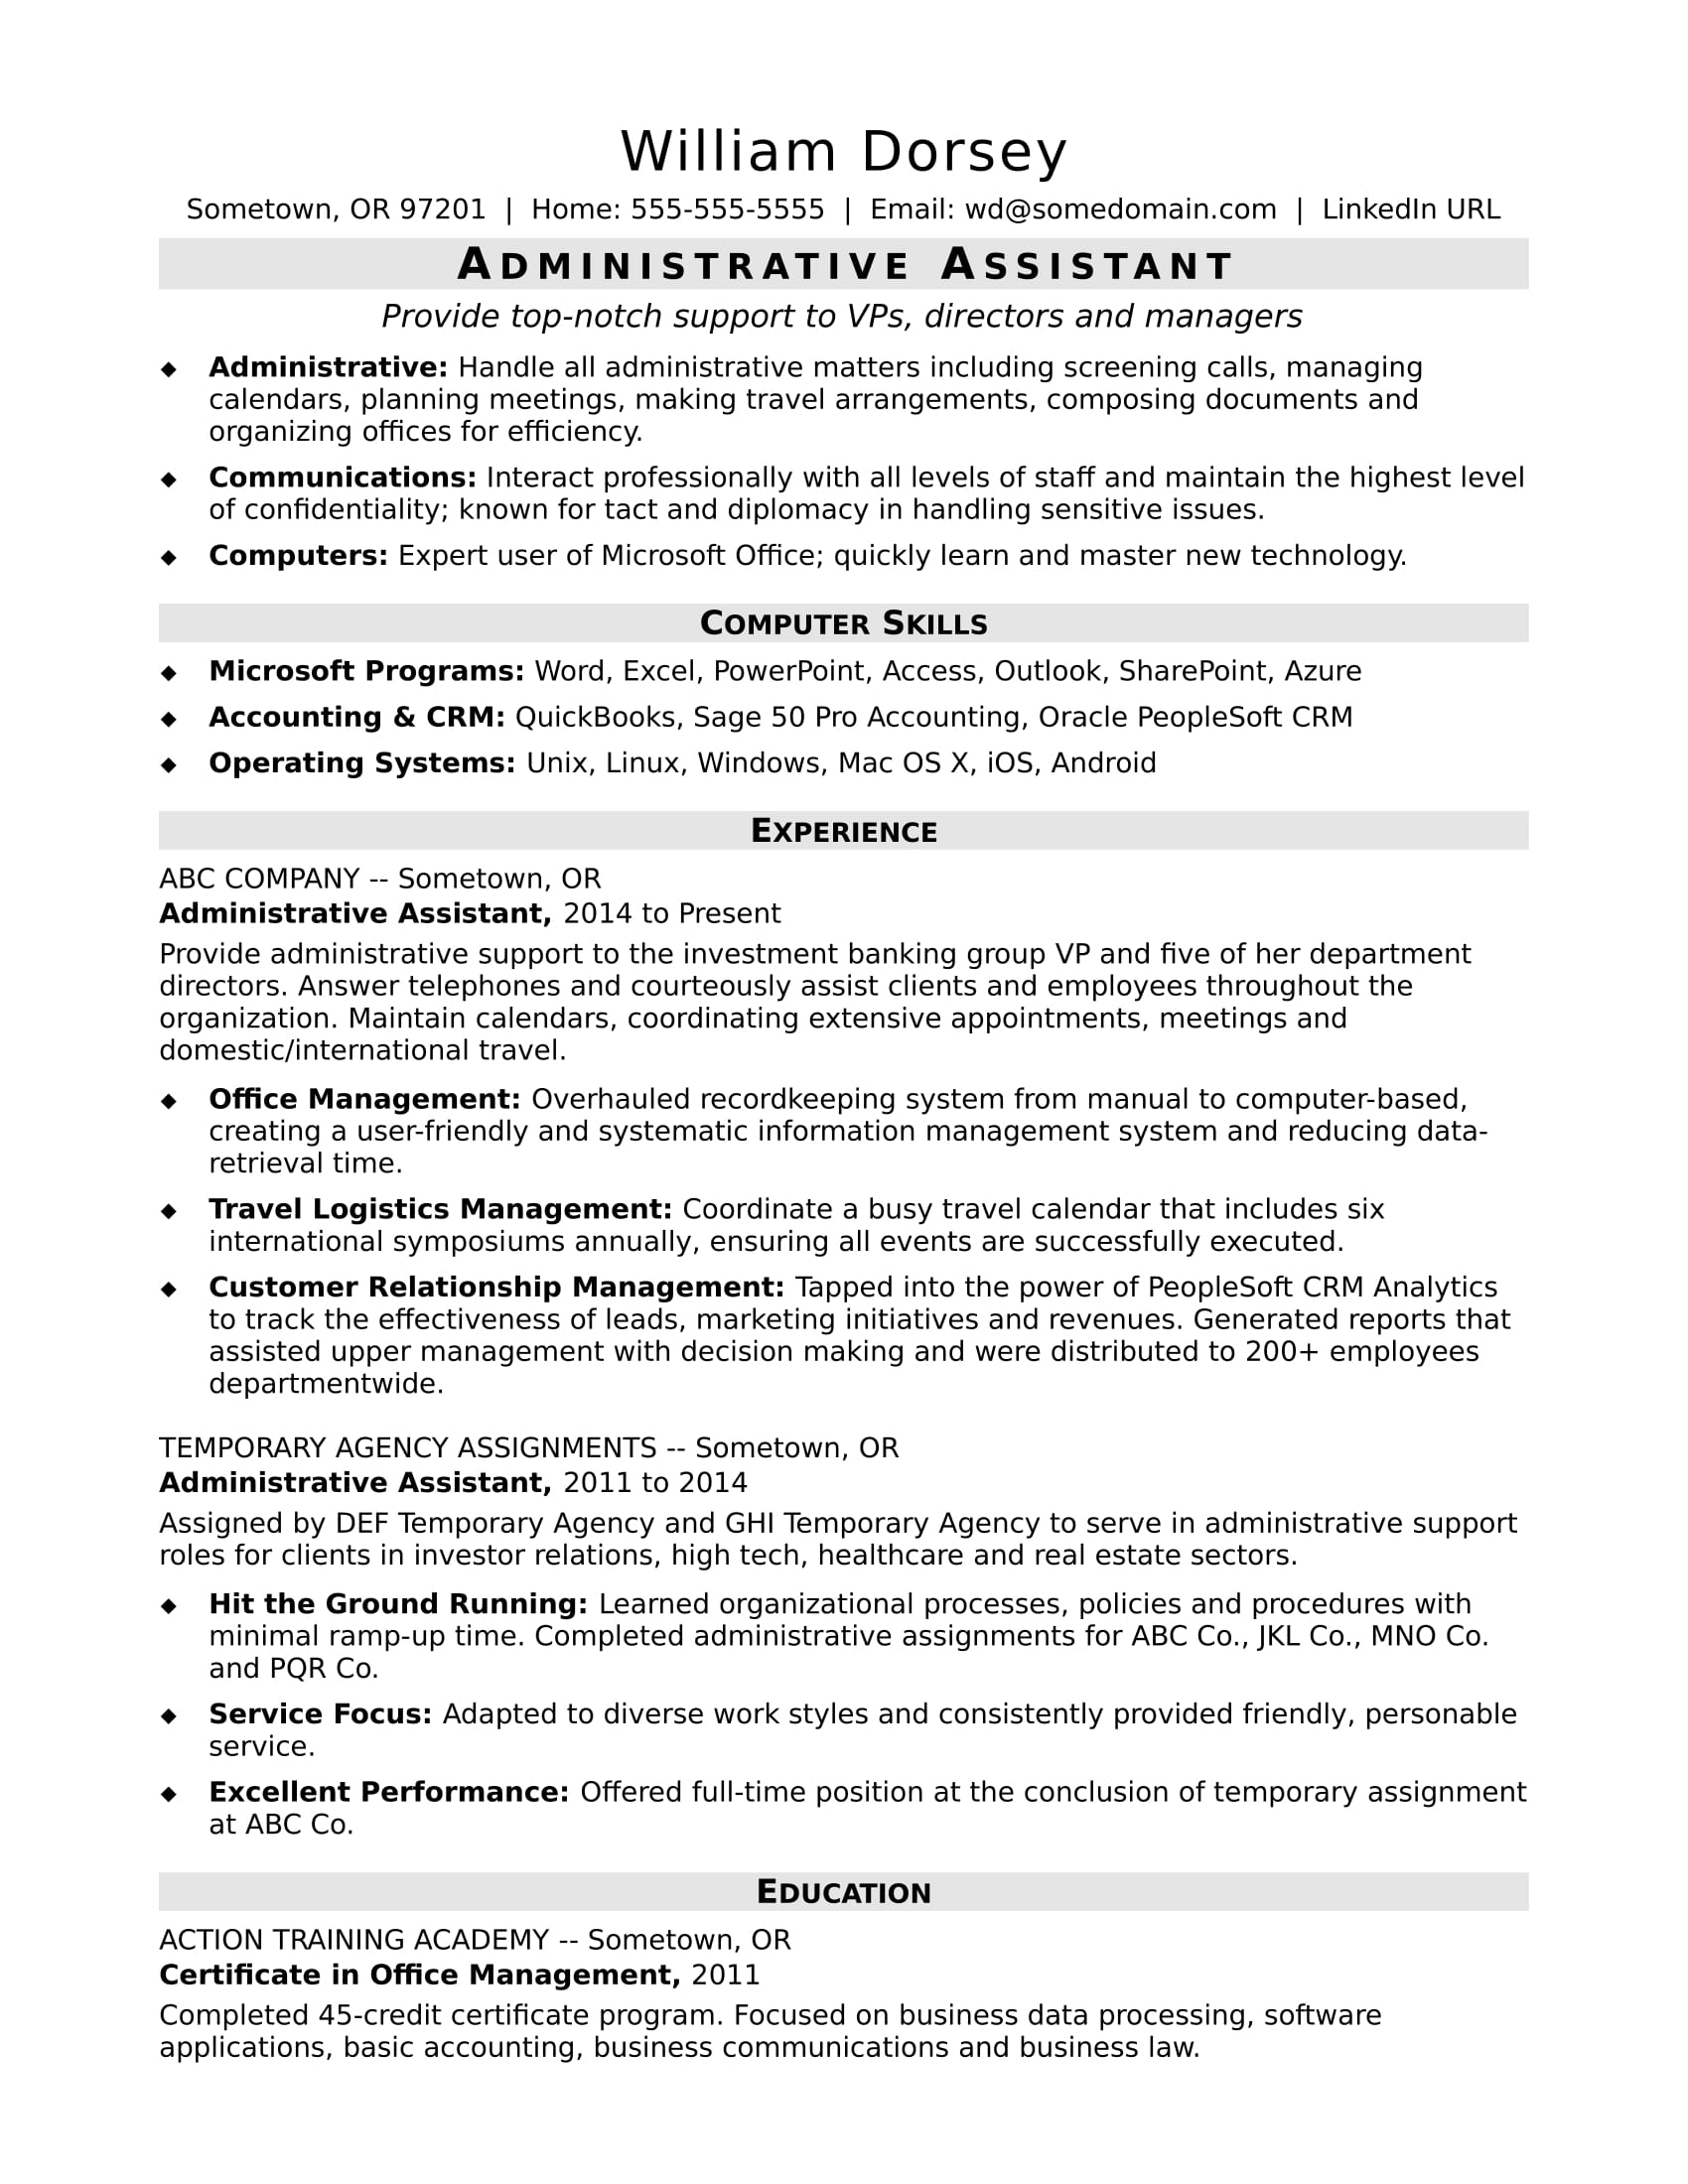 sample resume for a midlevel administrative assistant - Sample Administrative Management Resume